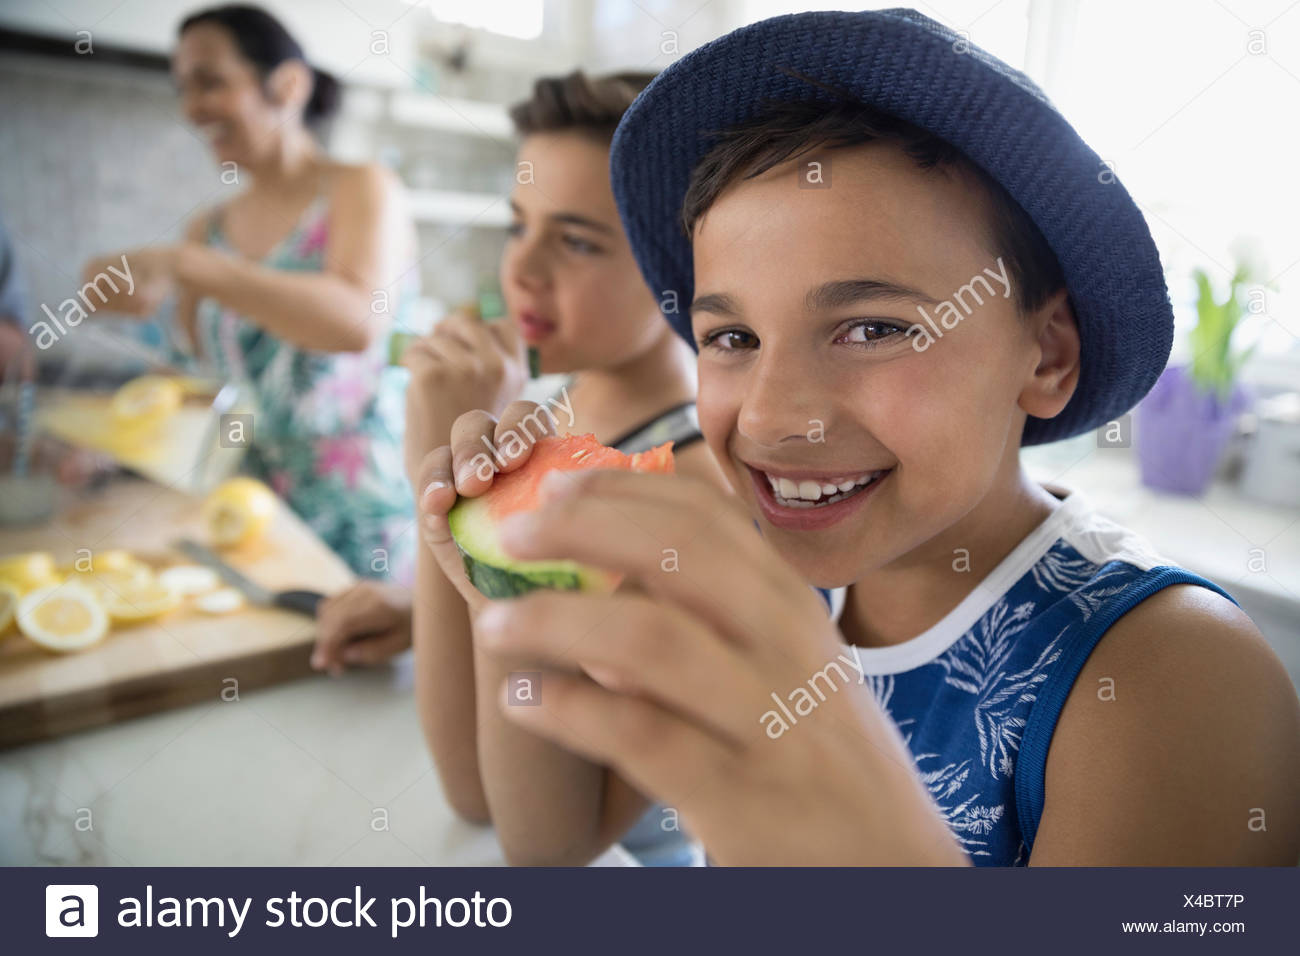 Portrait smiling boy eating watermelon in kitchen - Stock Image